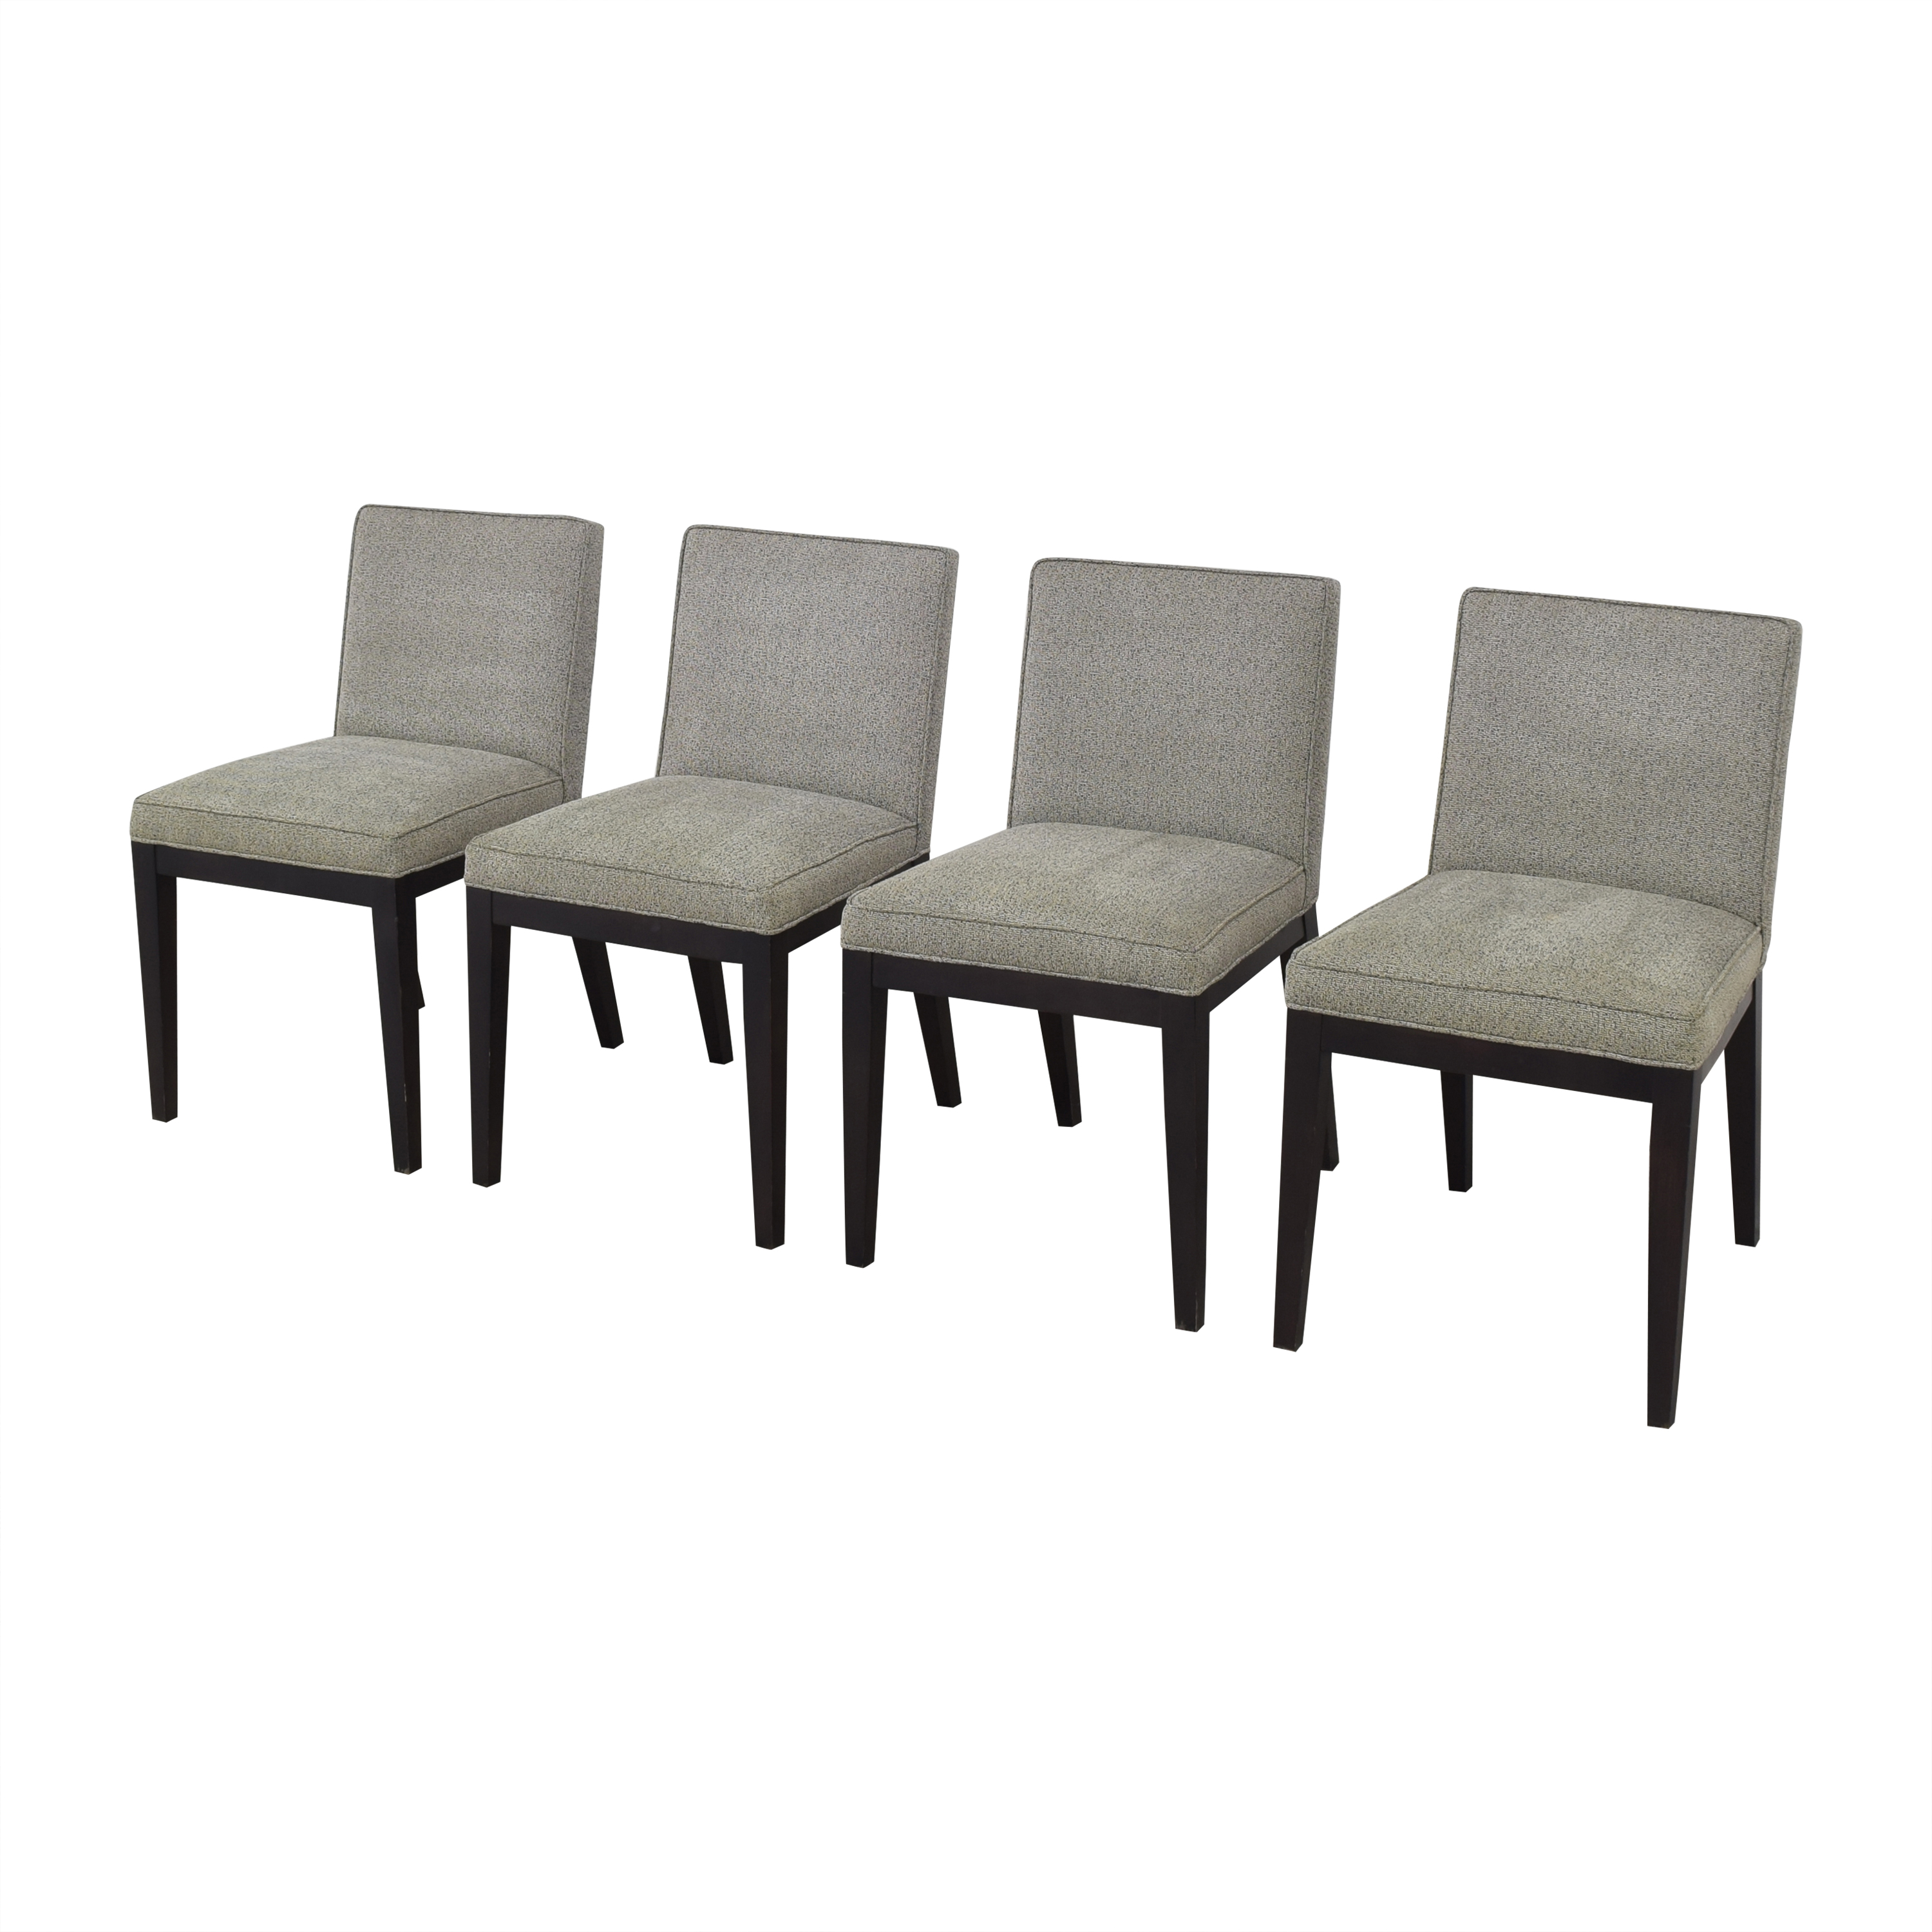 Room & Board Room & Board Ansel Dining Side Chairs discount